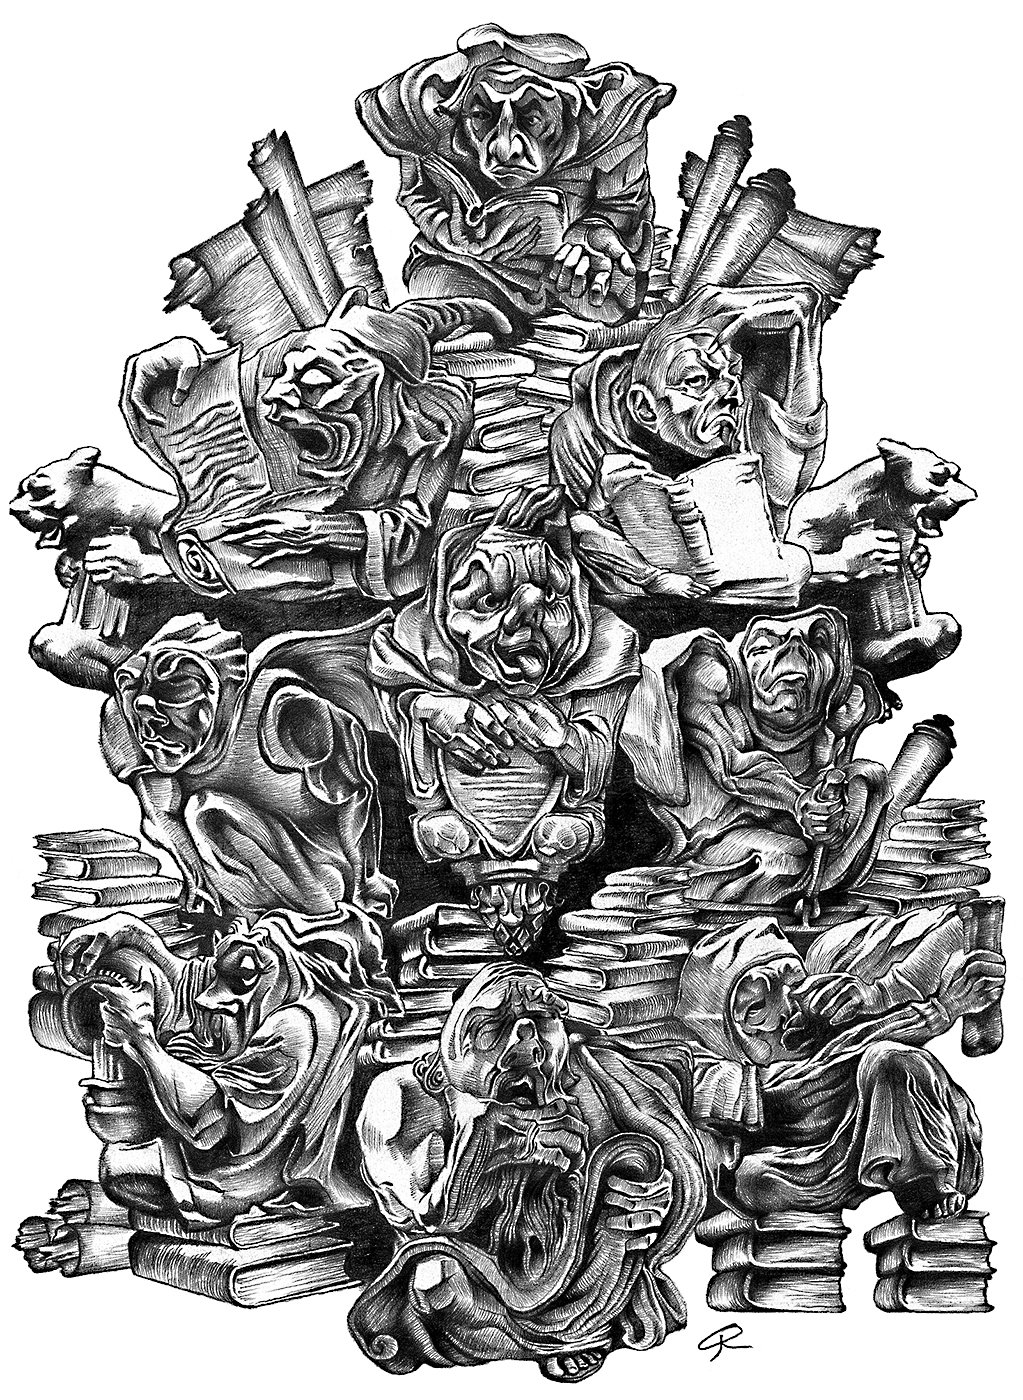 Illustration is completed entirely with a single pencil. It is a depiction of a time period when scientific men sought arcane wisdom, sorcery, and knowledge.